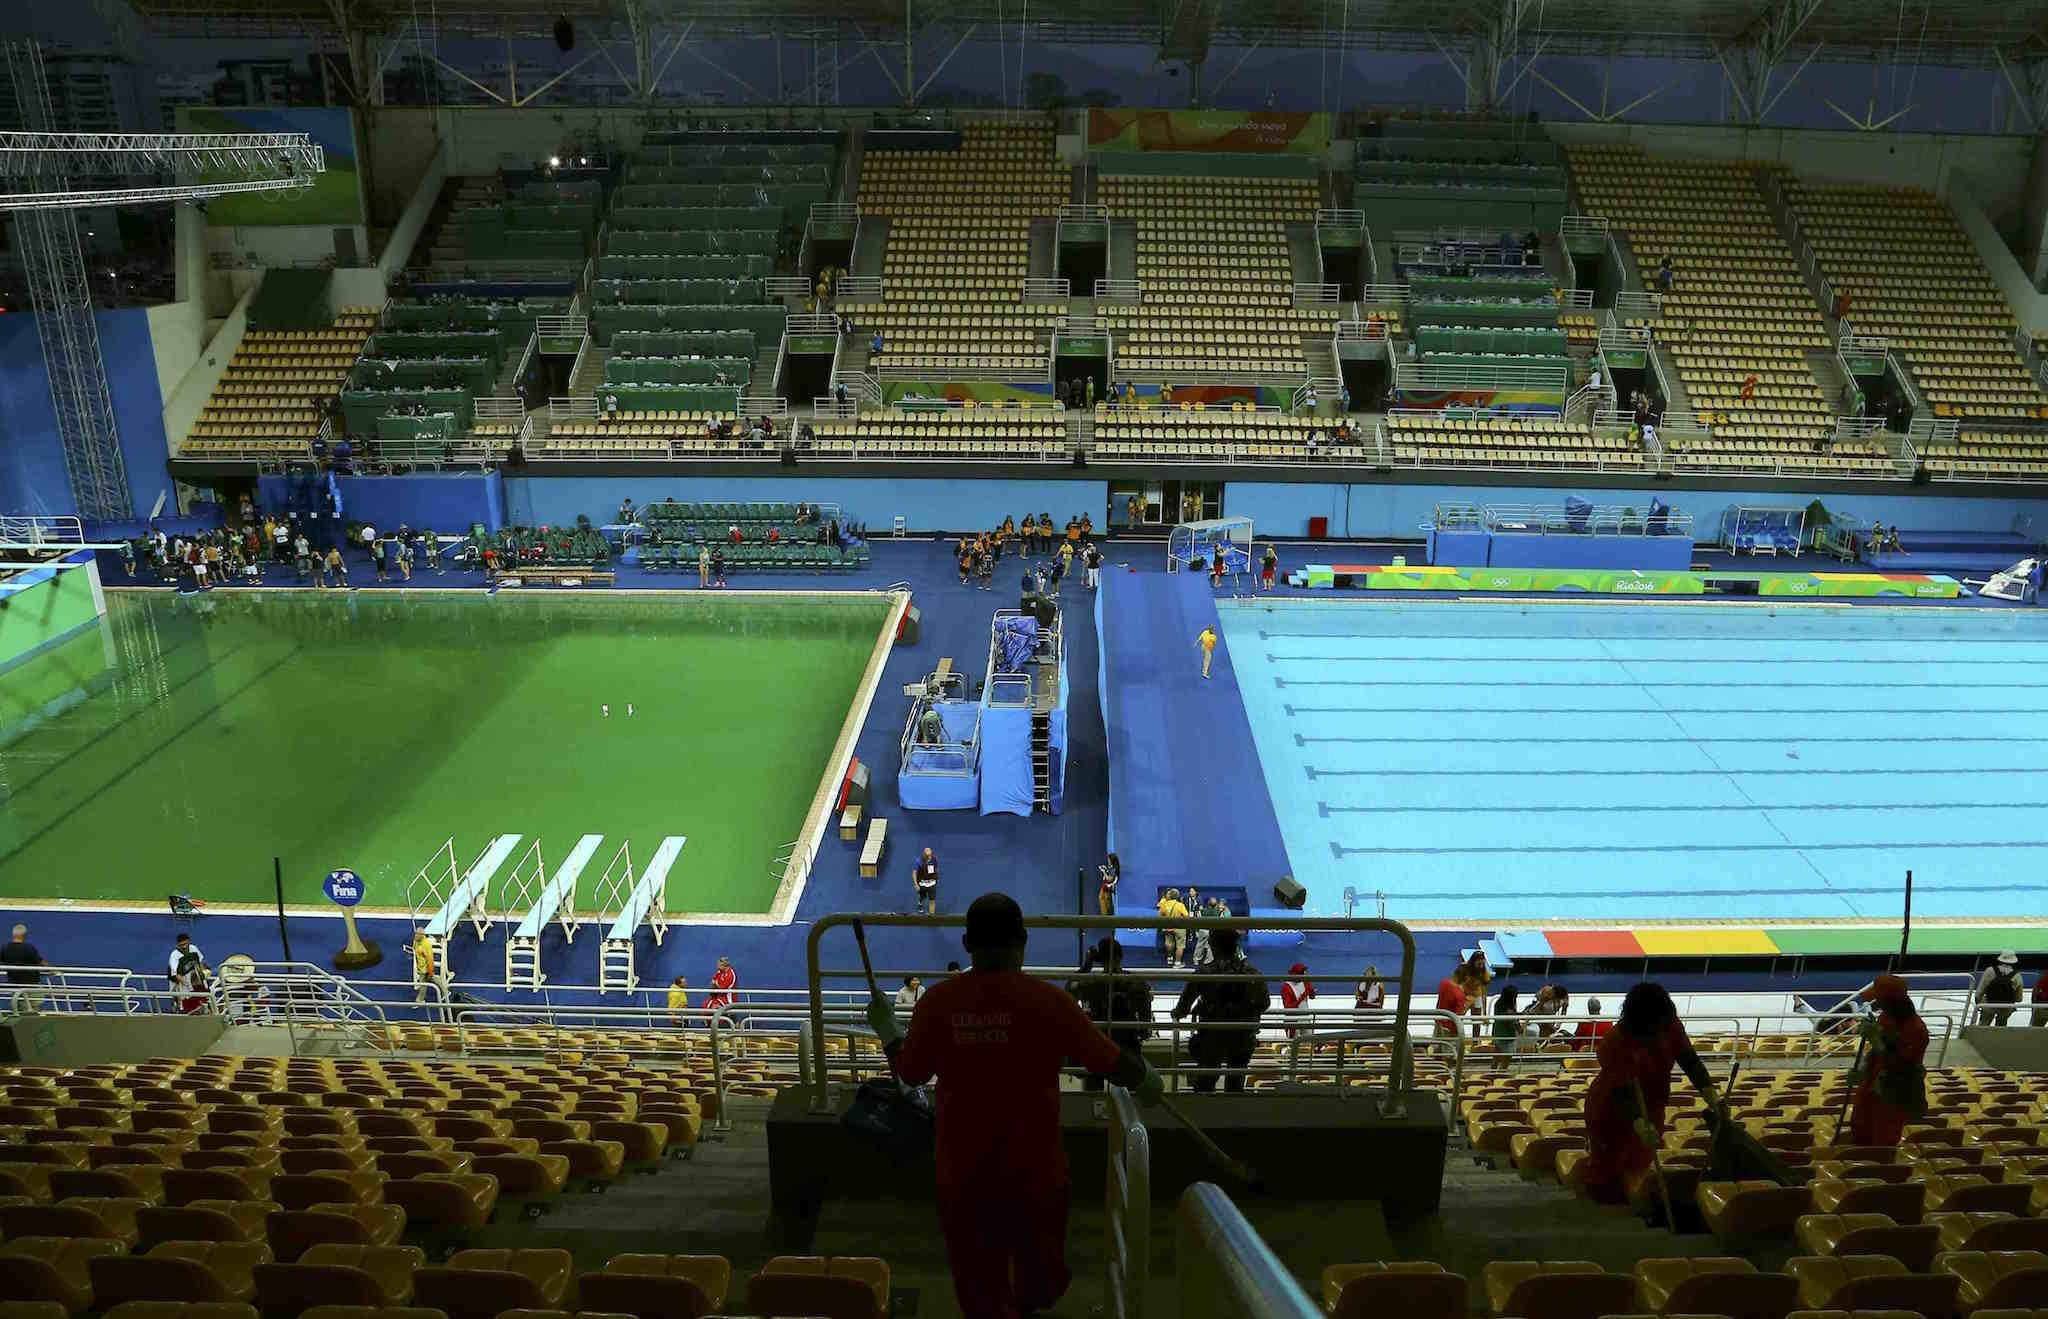 Why is the Olympic diving pool green? All of the reasons for the mysterious, verdant pool